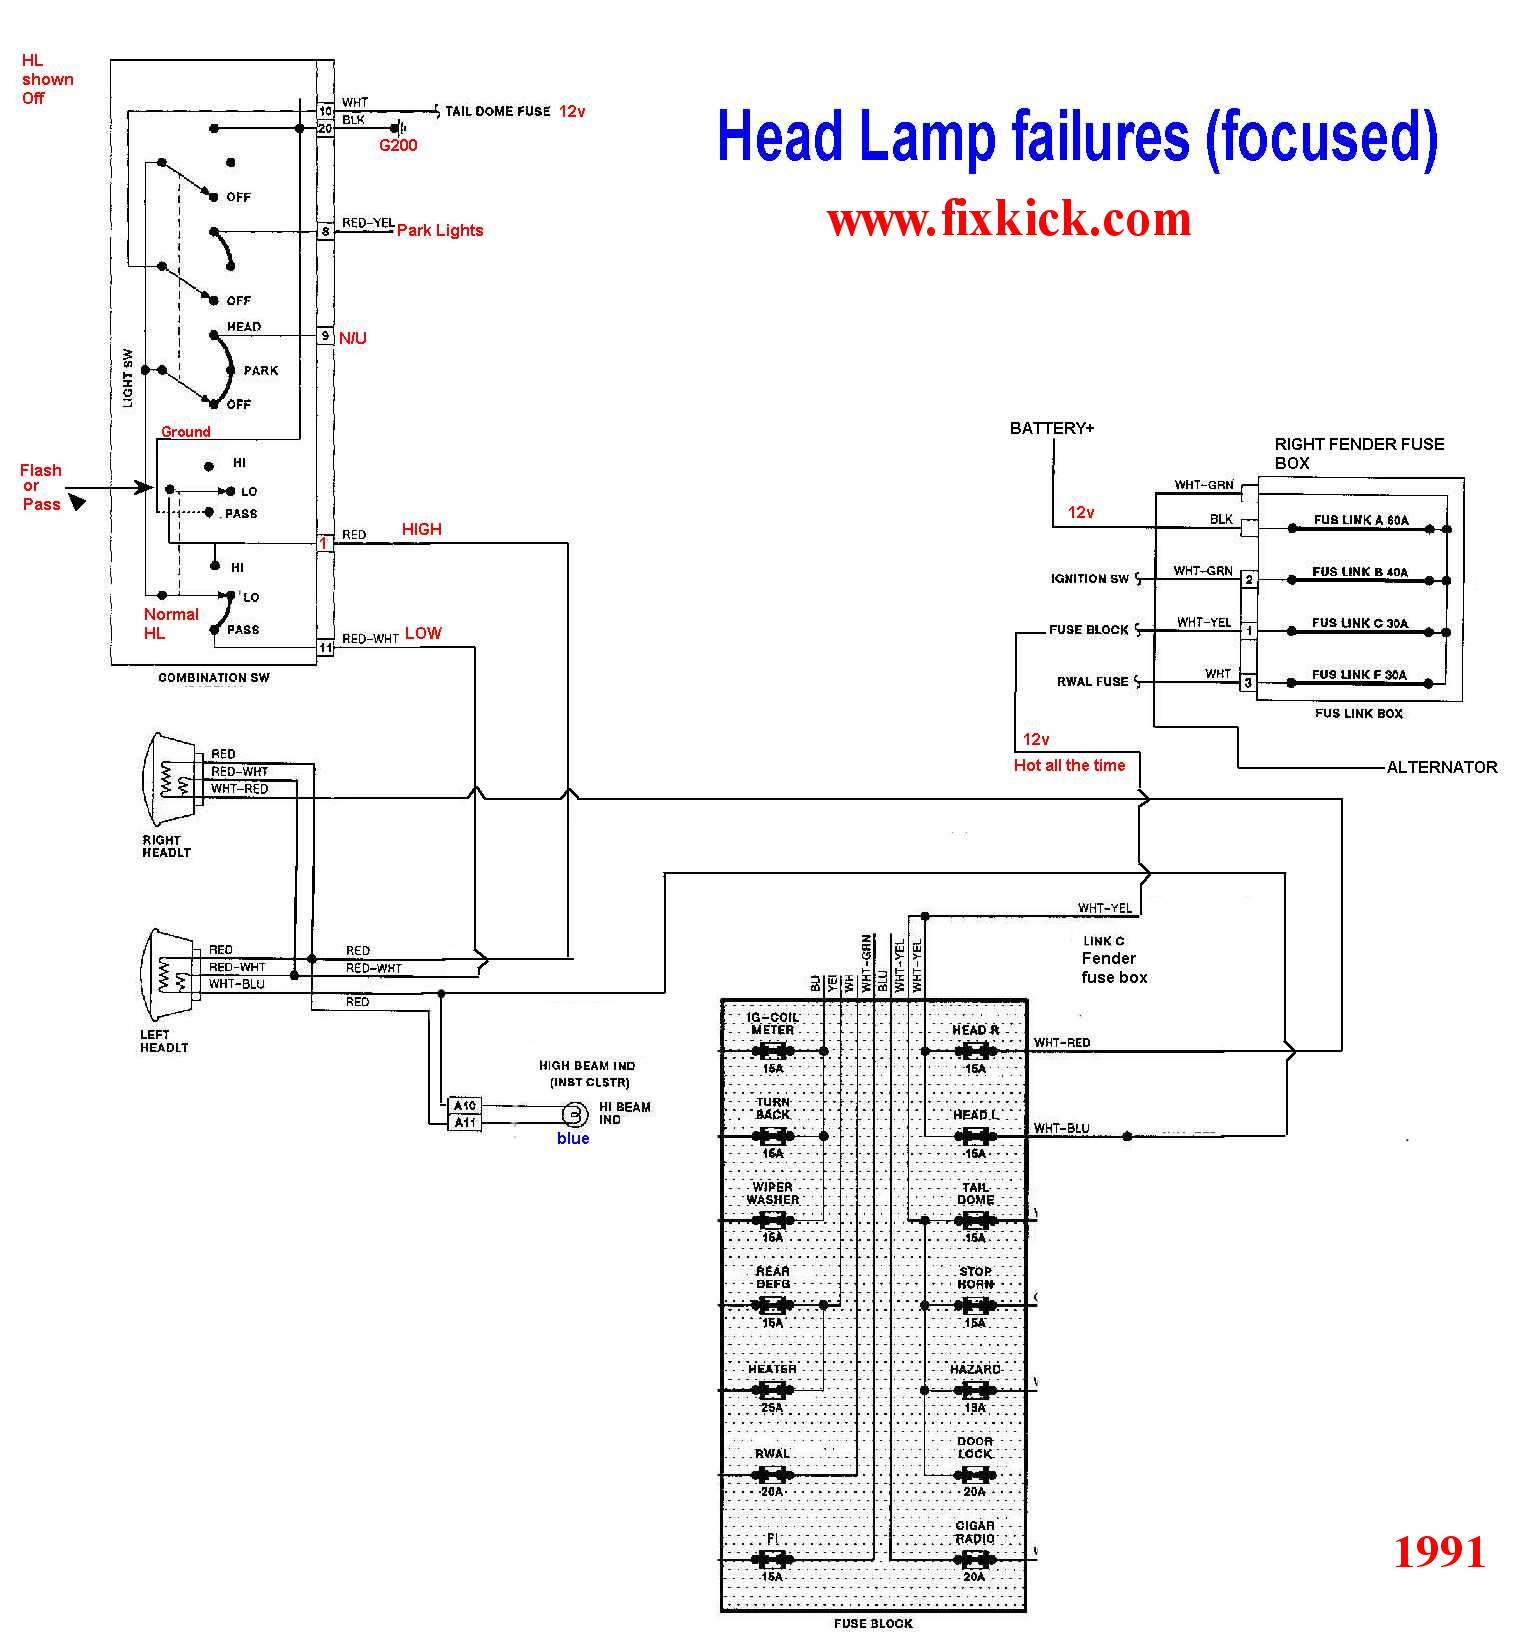 Suzuki Samurai Distributor Wiring Library Coil The 1991 Unified Head Light Schematic I Made